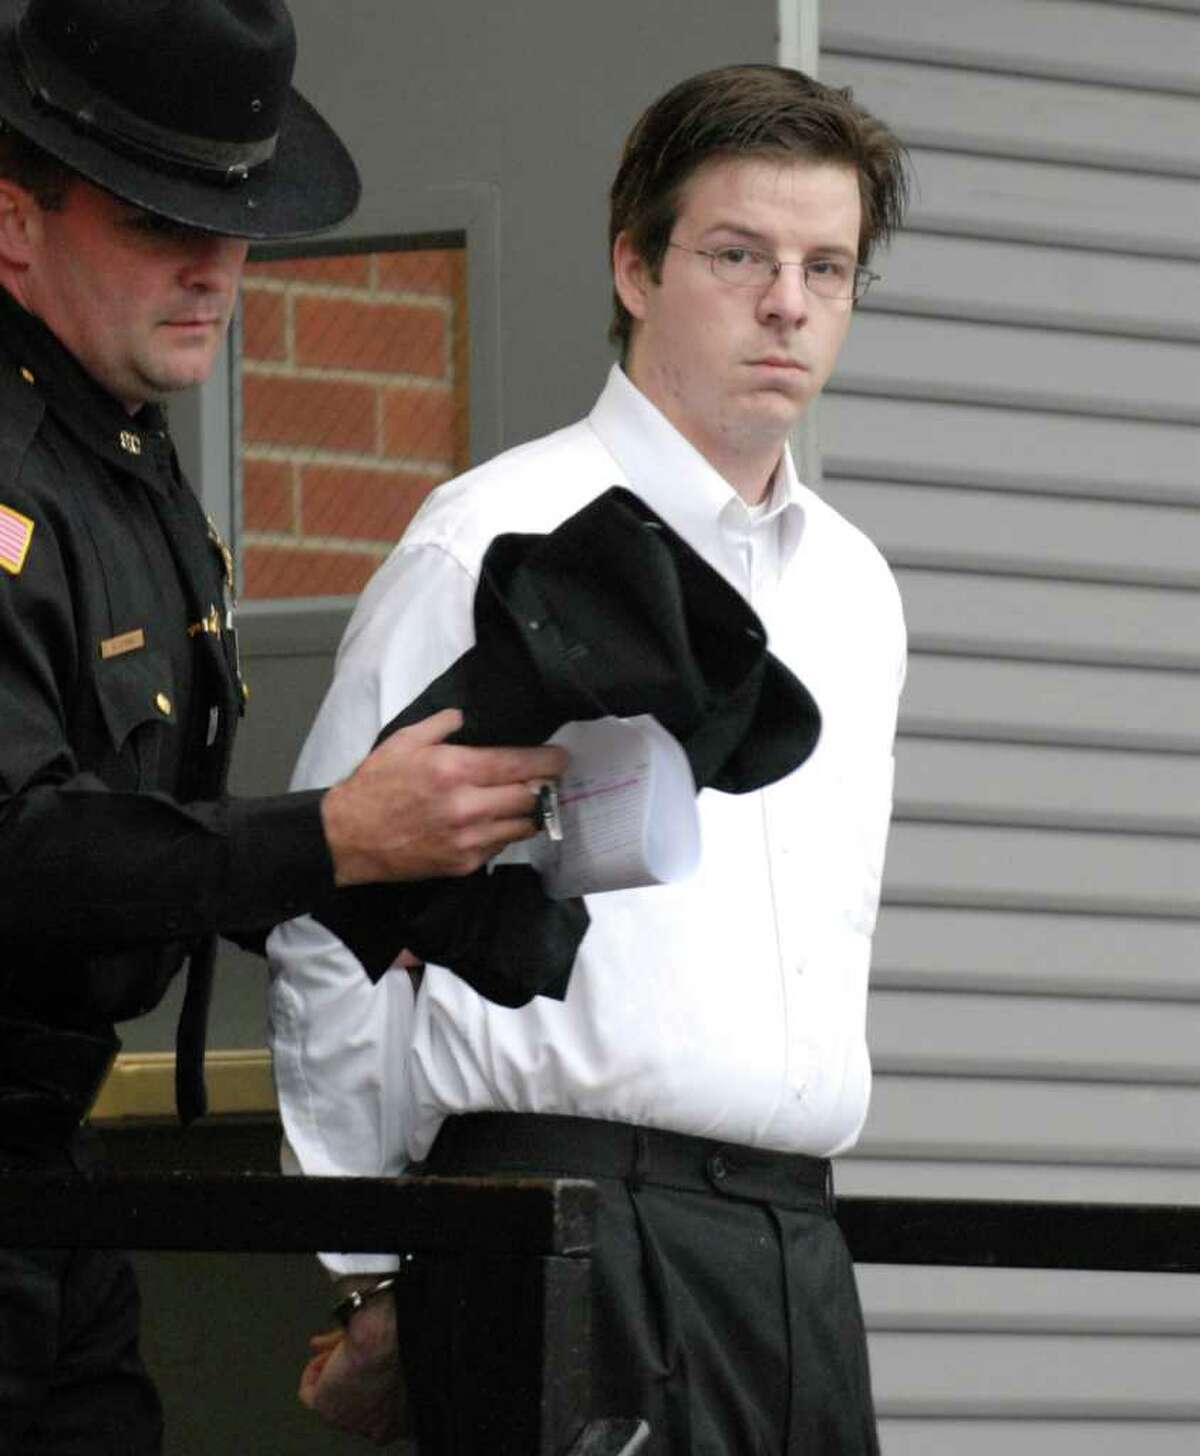 TIMES UNION STAFF PHOTO WILL WALDRON -- Clifton Park elementary school teacher Christopher Culver is escorted out of the Saratoga County Courthouse where he admitted in court to molesting eight of his first-grade students, and plead guilty to all charges against him, Monday moring in Ballston Spa November 26, 2007.